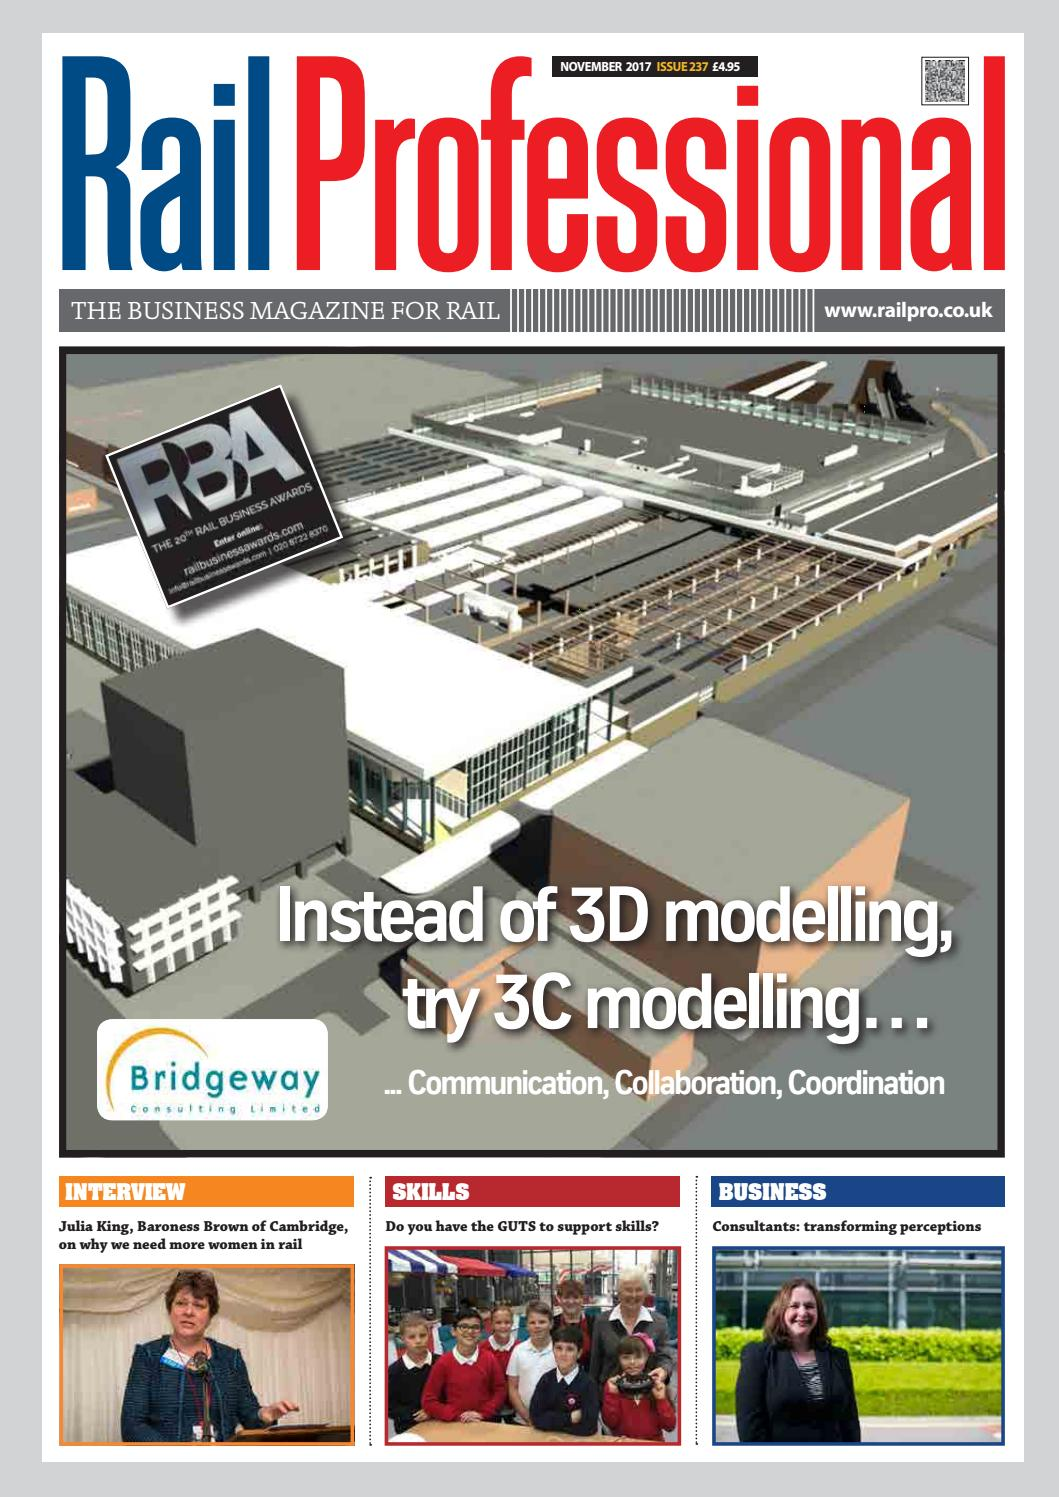 Rail Professional November 2017 By Magazine Issuu 12v Circuit Isolating It From The Rest Of House39s 240v System